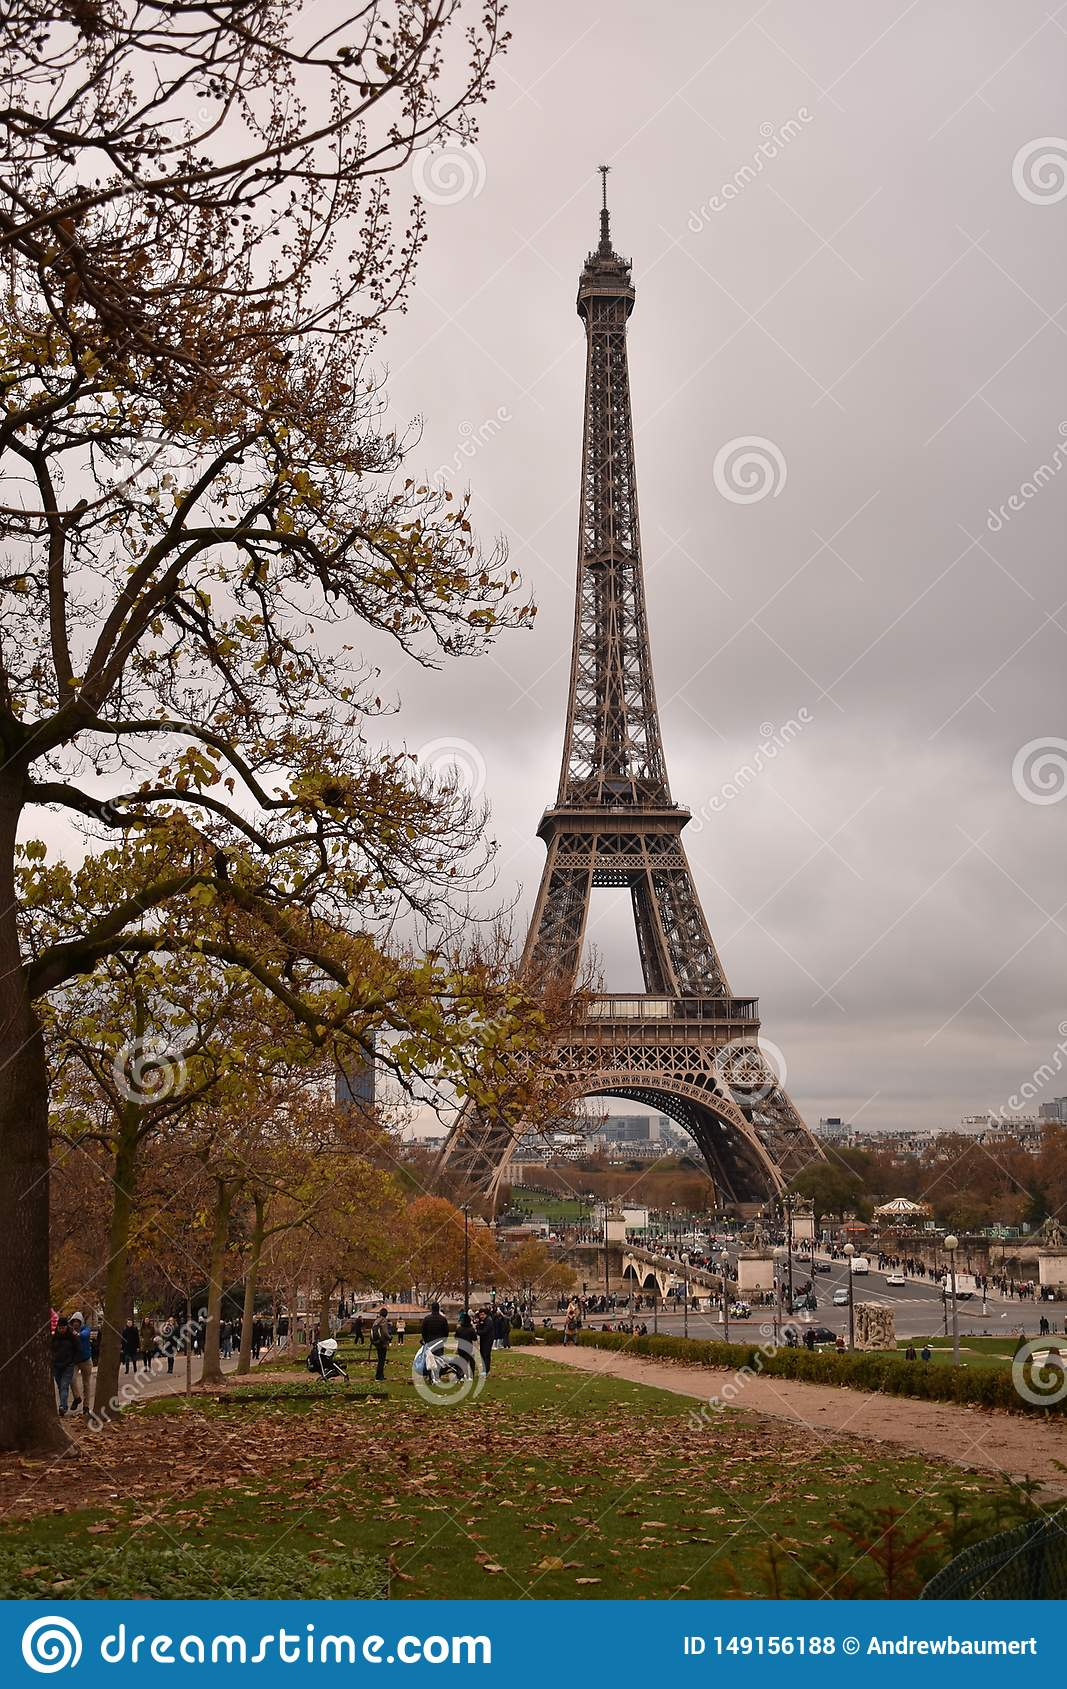 The Eiffel Tower on a Fall Day